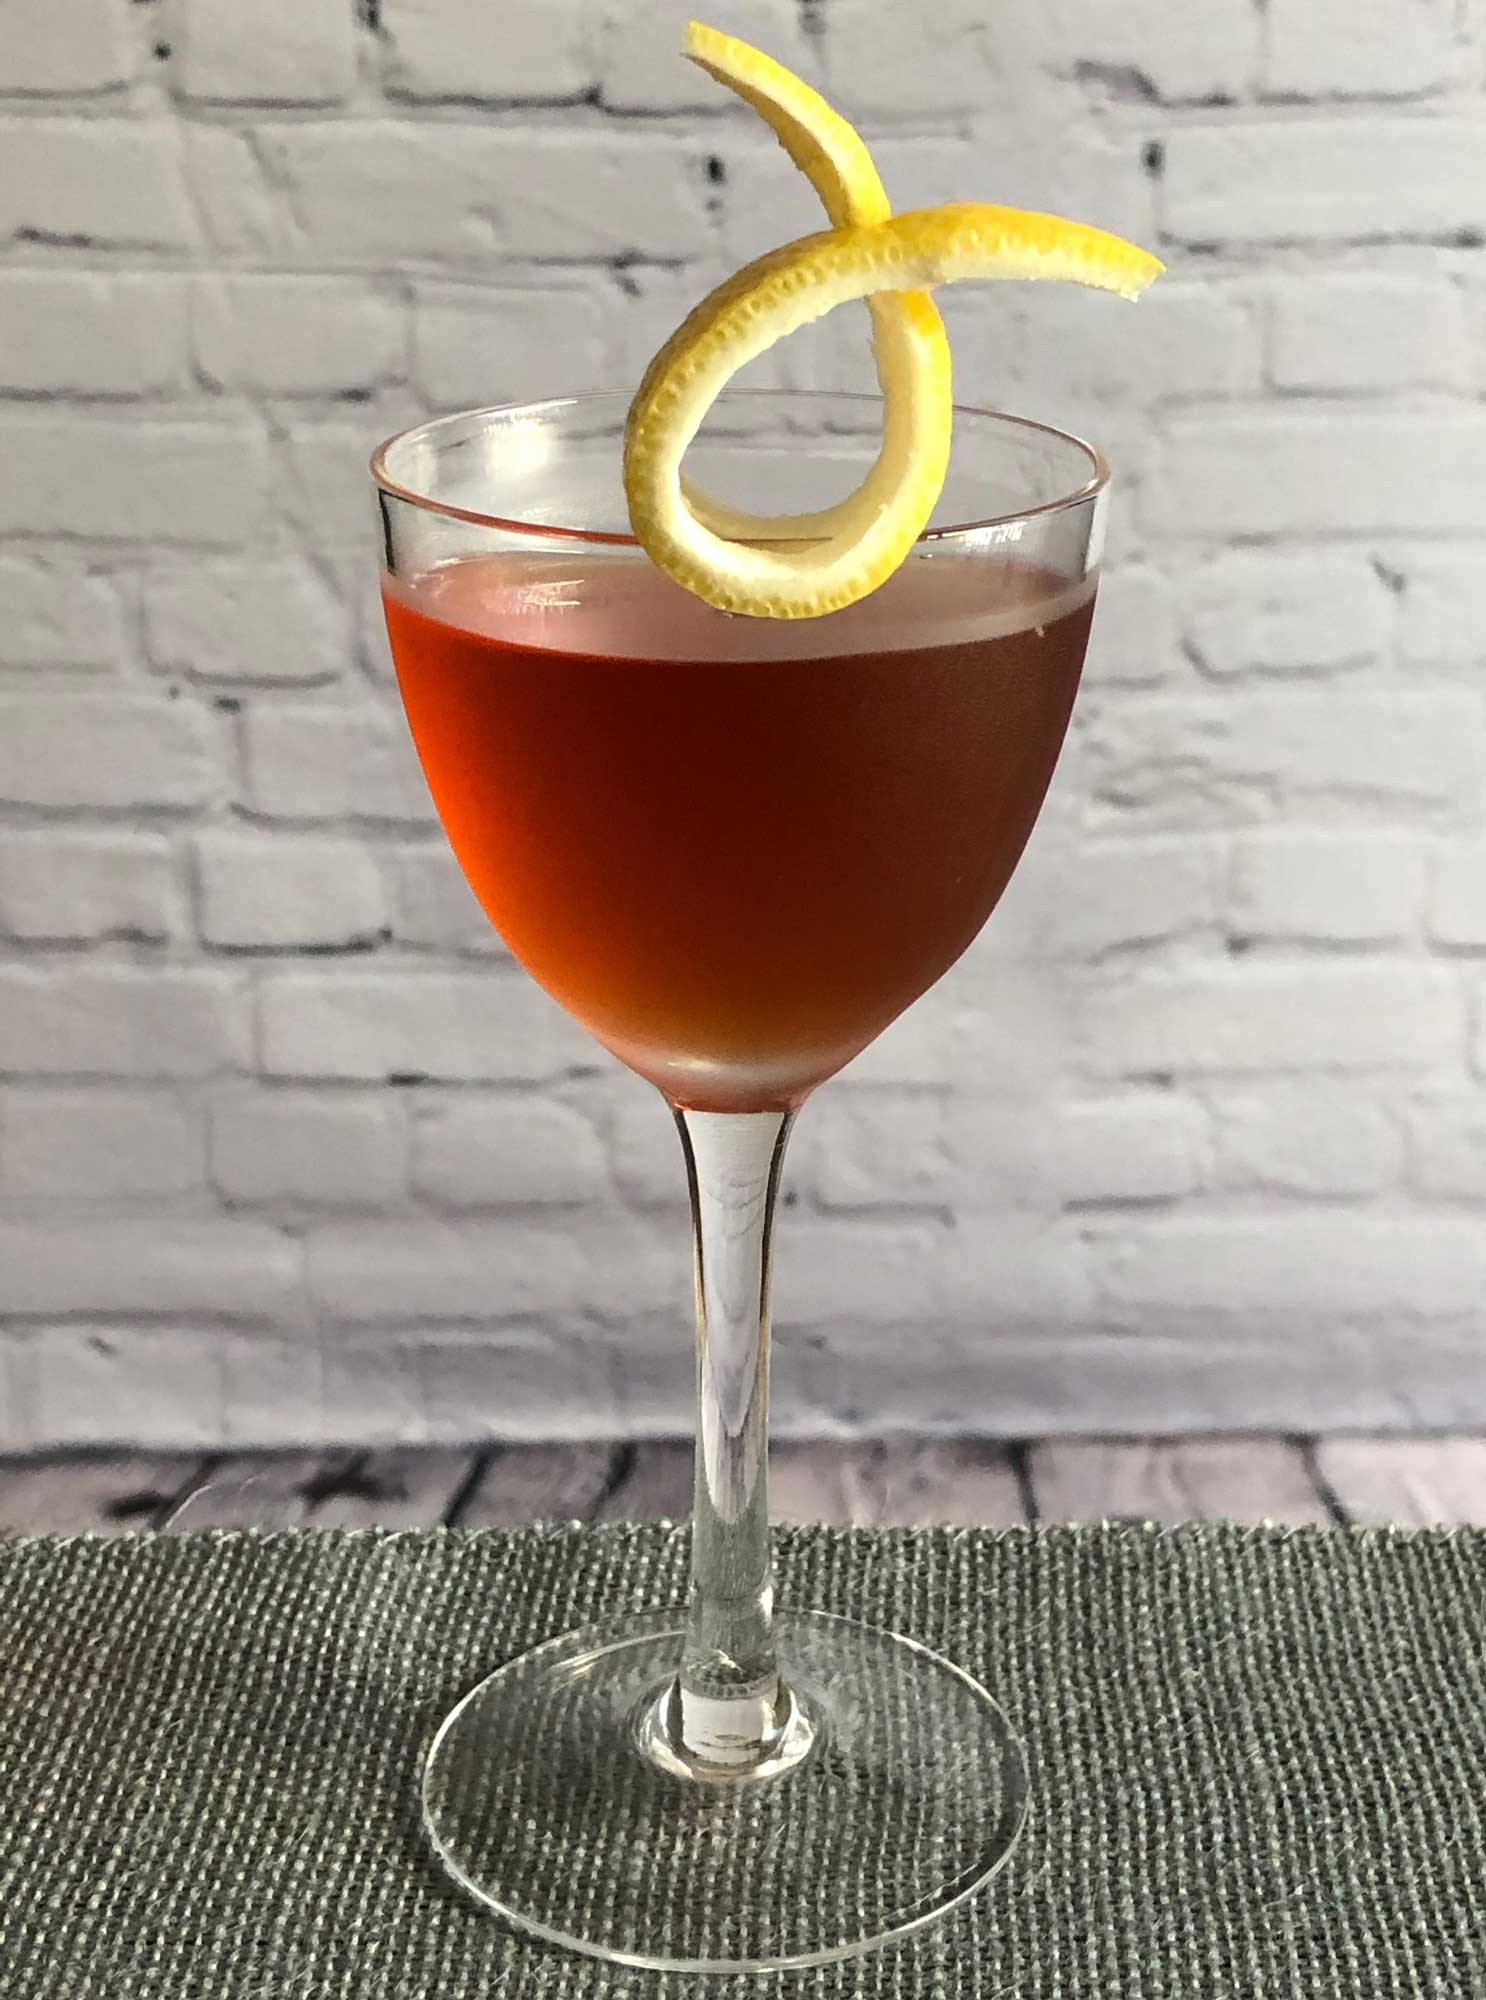 An example of the Moll Cocktail, the mixed drink (cocktail), by Savoy Cocktail Book, featuring Hayman's Sloe Gin, Hayman's London Dry Gin, Dolin Dry Vermouth de Chambéry, and orange bitters; photo by Lee Edwards